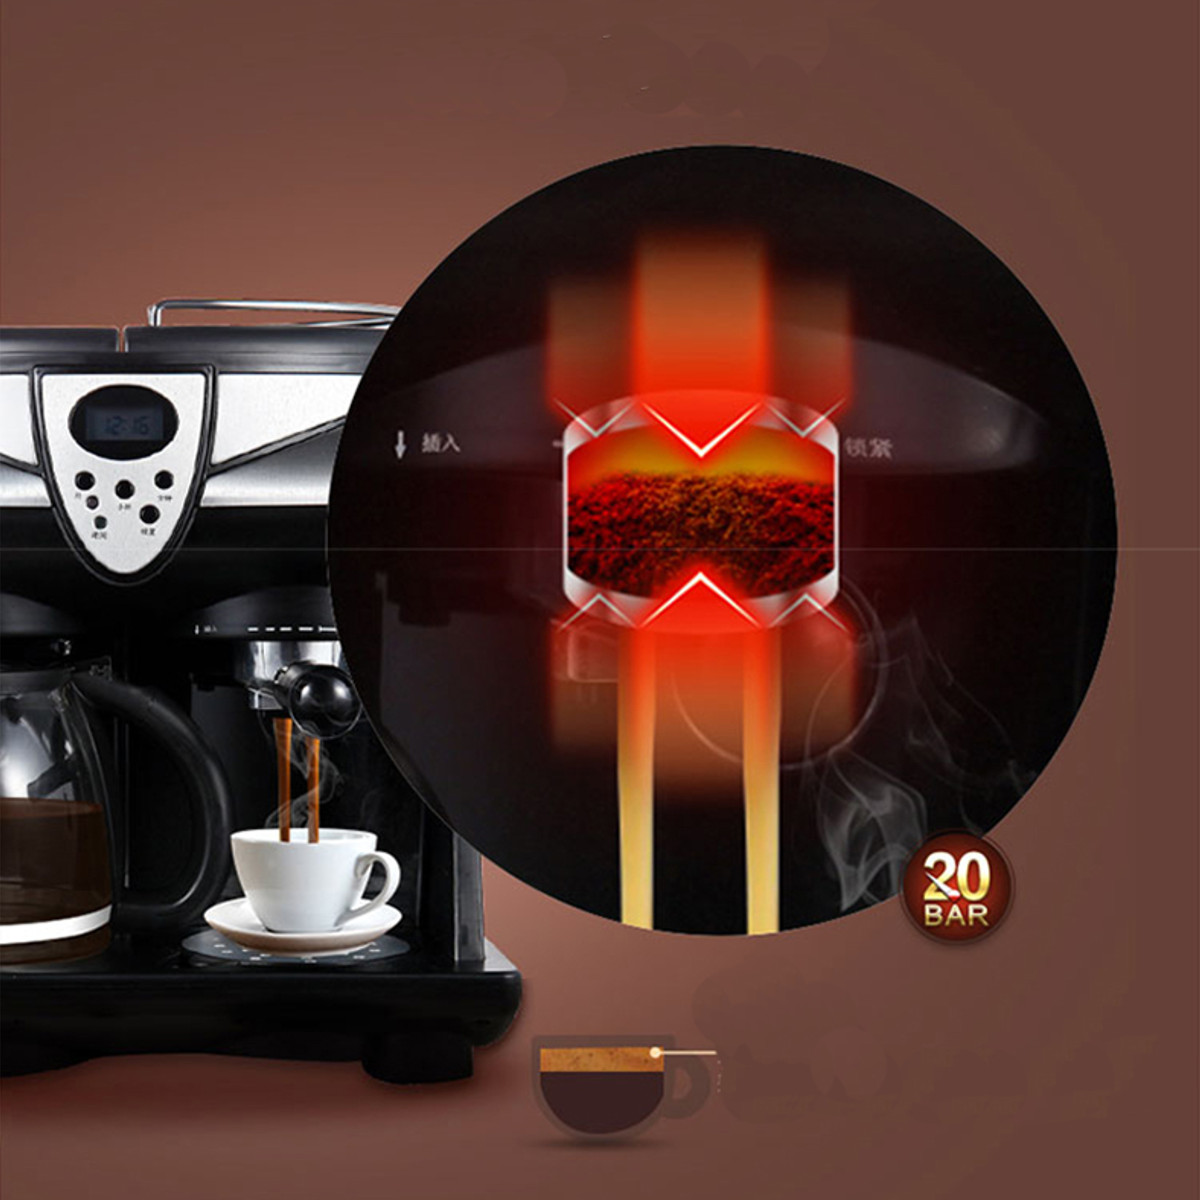 Donlim DL-KF7001 Espresso Coffee Machine Consumer and Commercial Automatic Steam Milk Coffee Maker